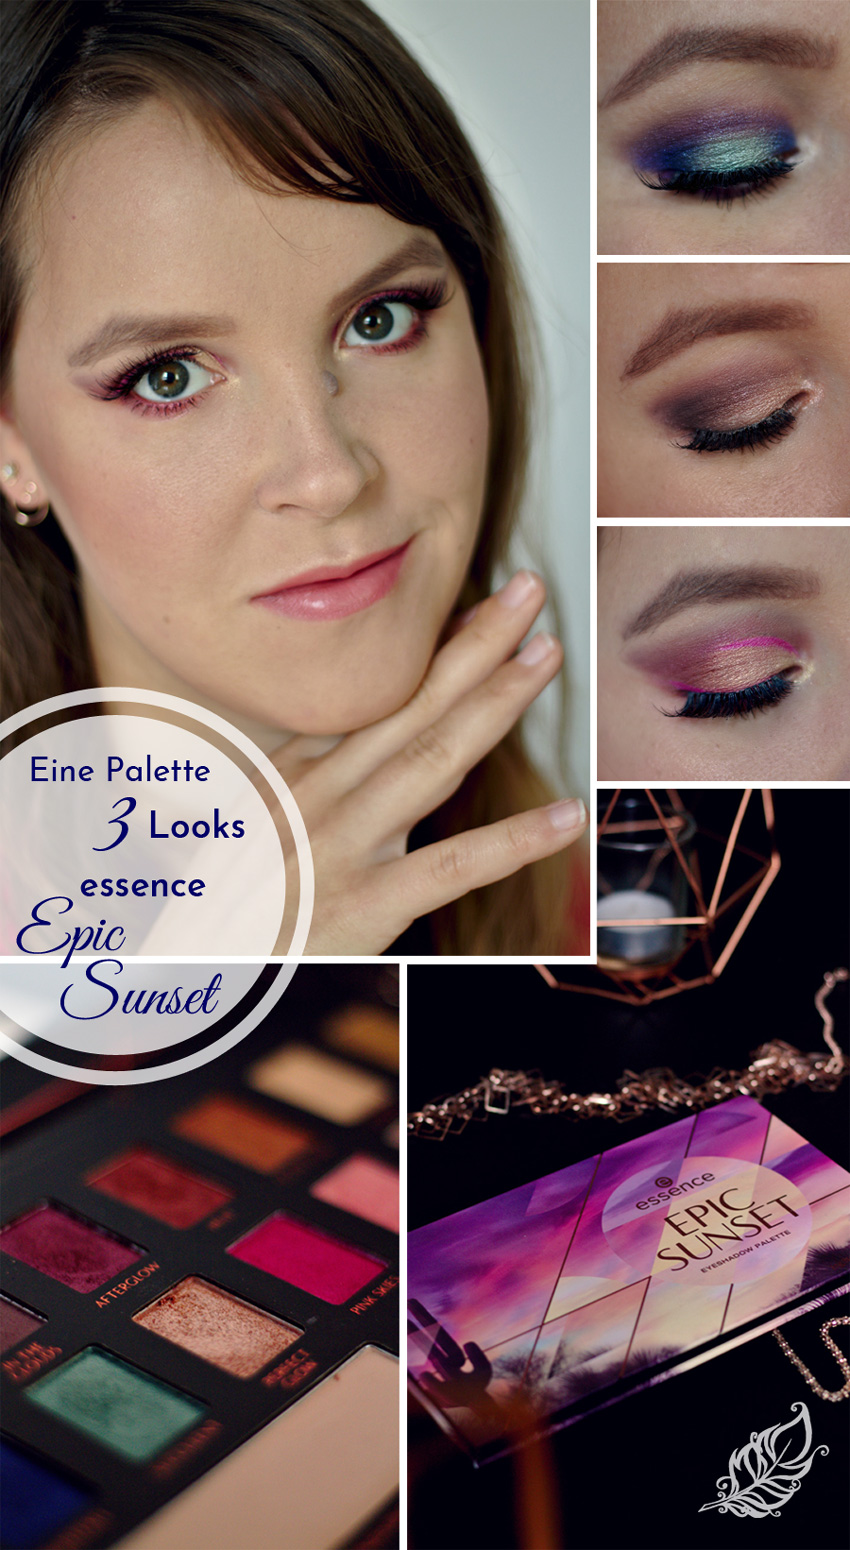 All the wonderful things: Eine Palette 3 Looks: Essence Epic Sunset